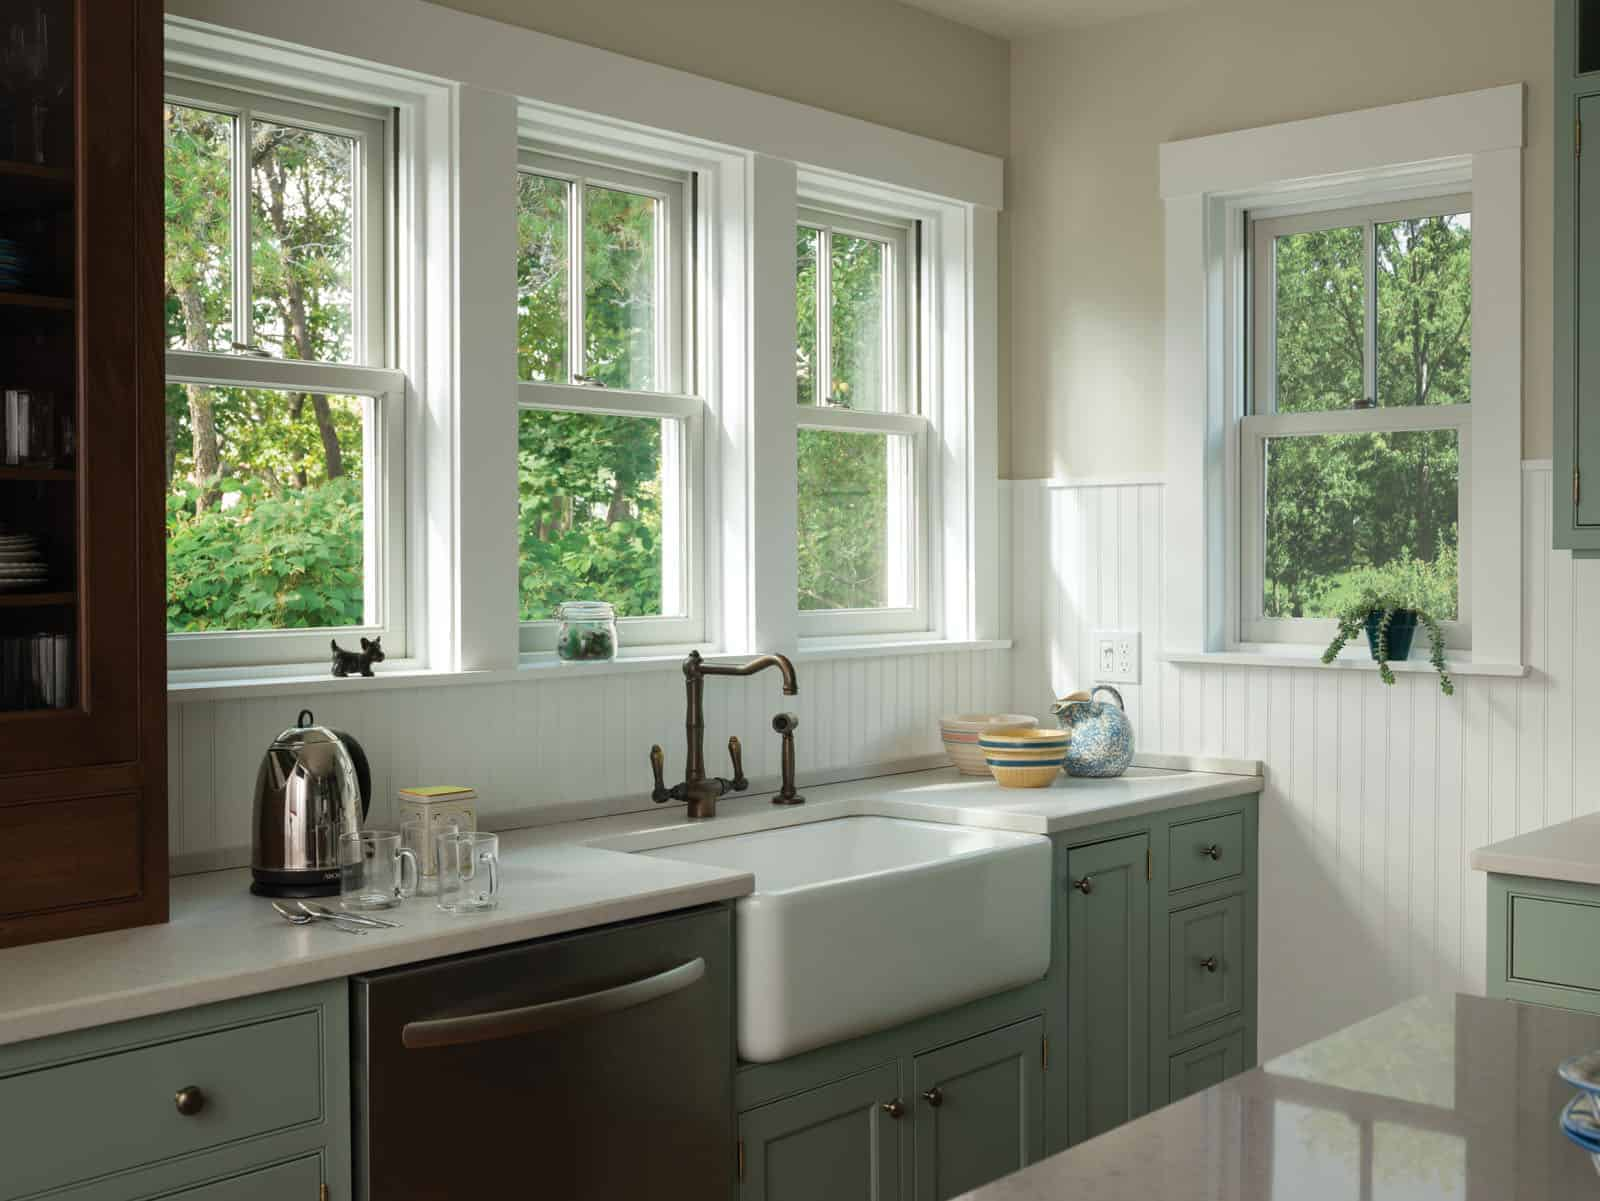 Some of the best wood windows from Jones Paint & Glass are installed above kitchen sink in Utah home